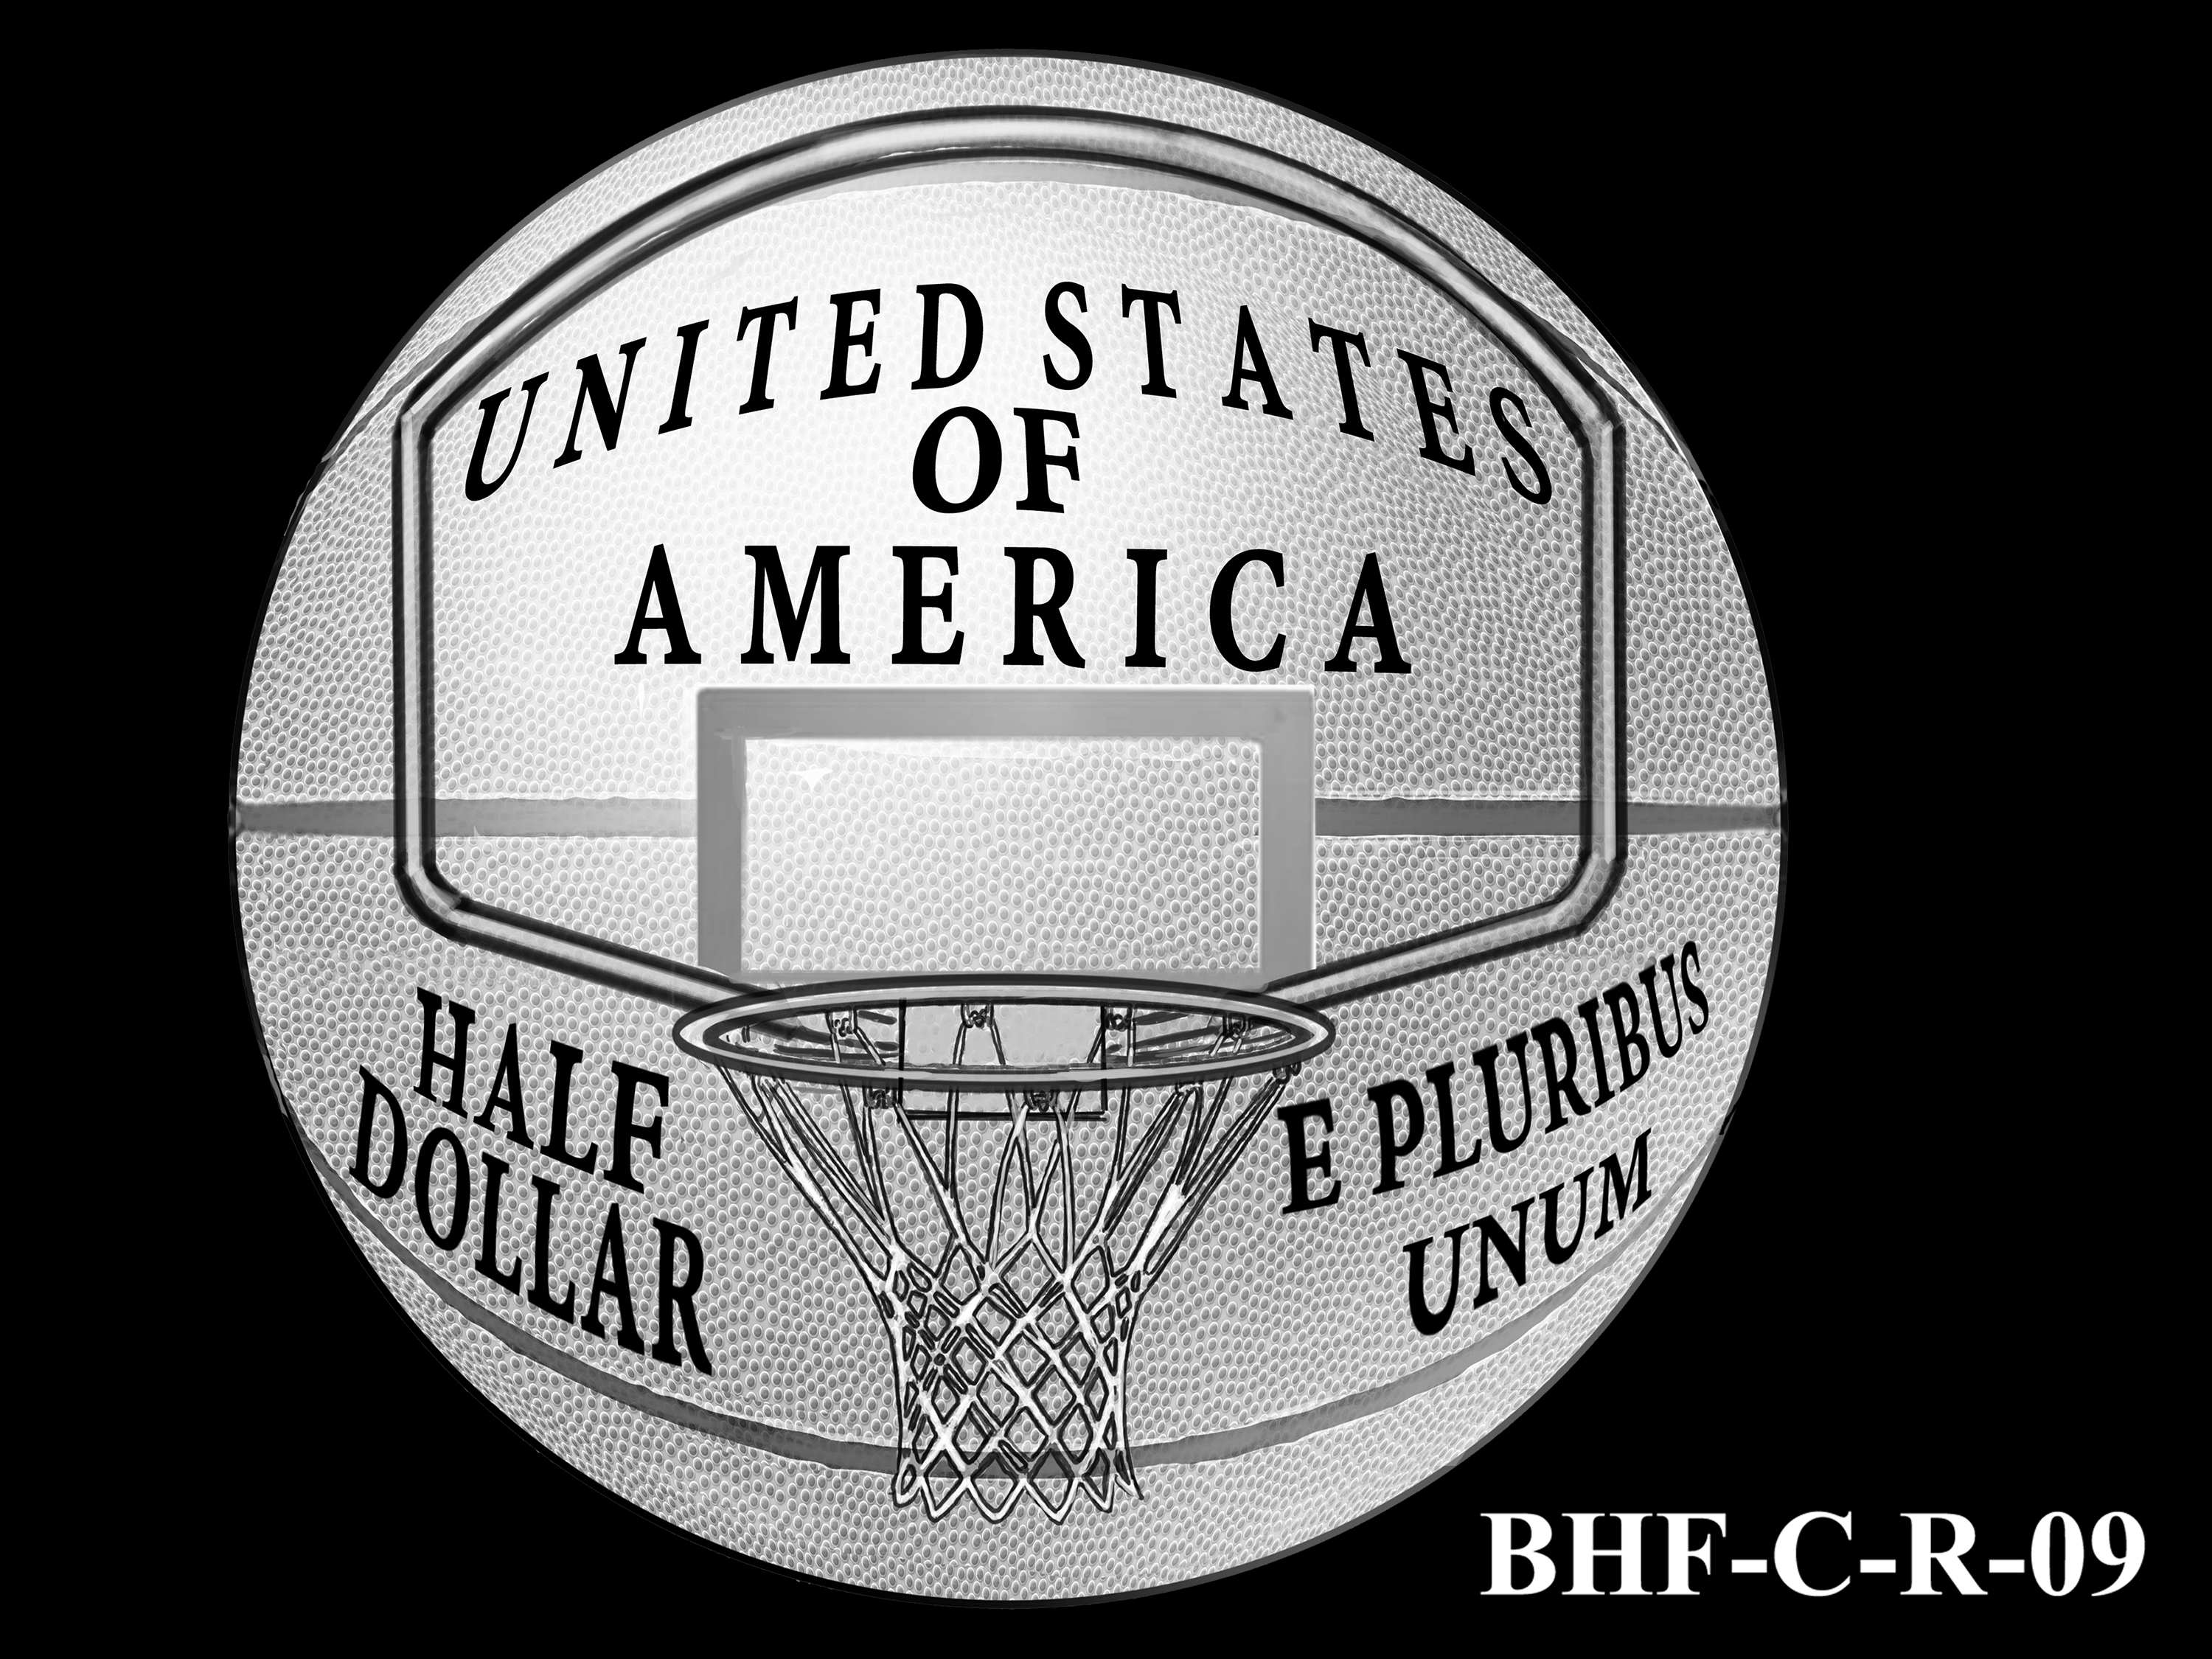 BHF-C-R-09 -- 2020 Basketball Hall of Fame Commemorative Coin Program - Clad Reverse